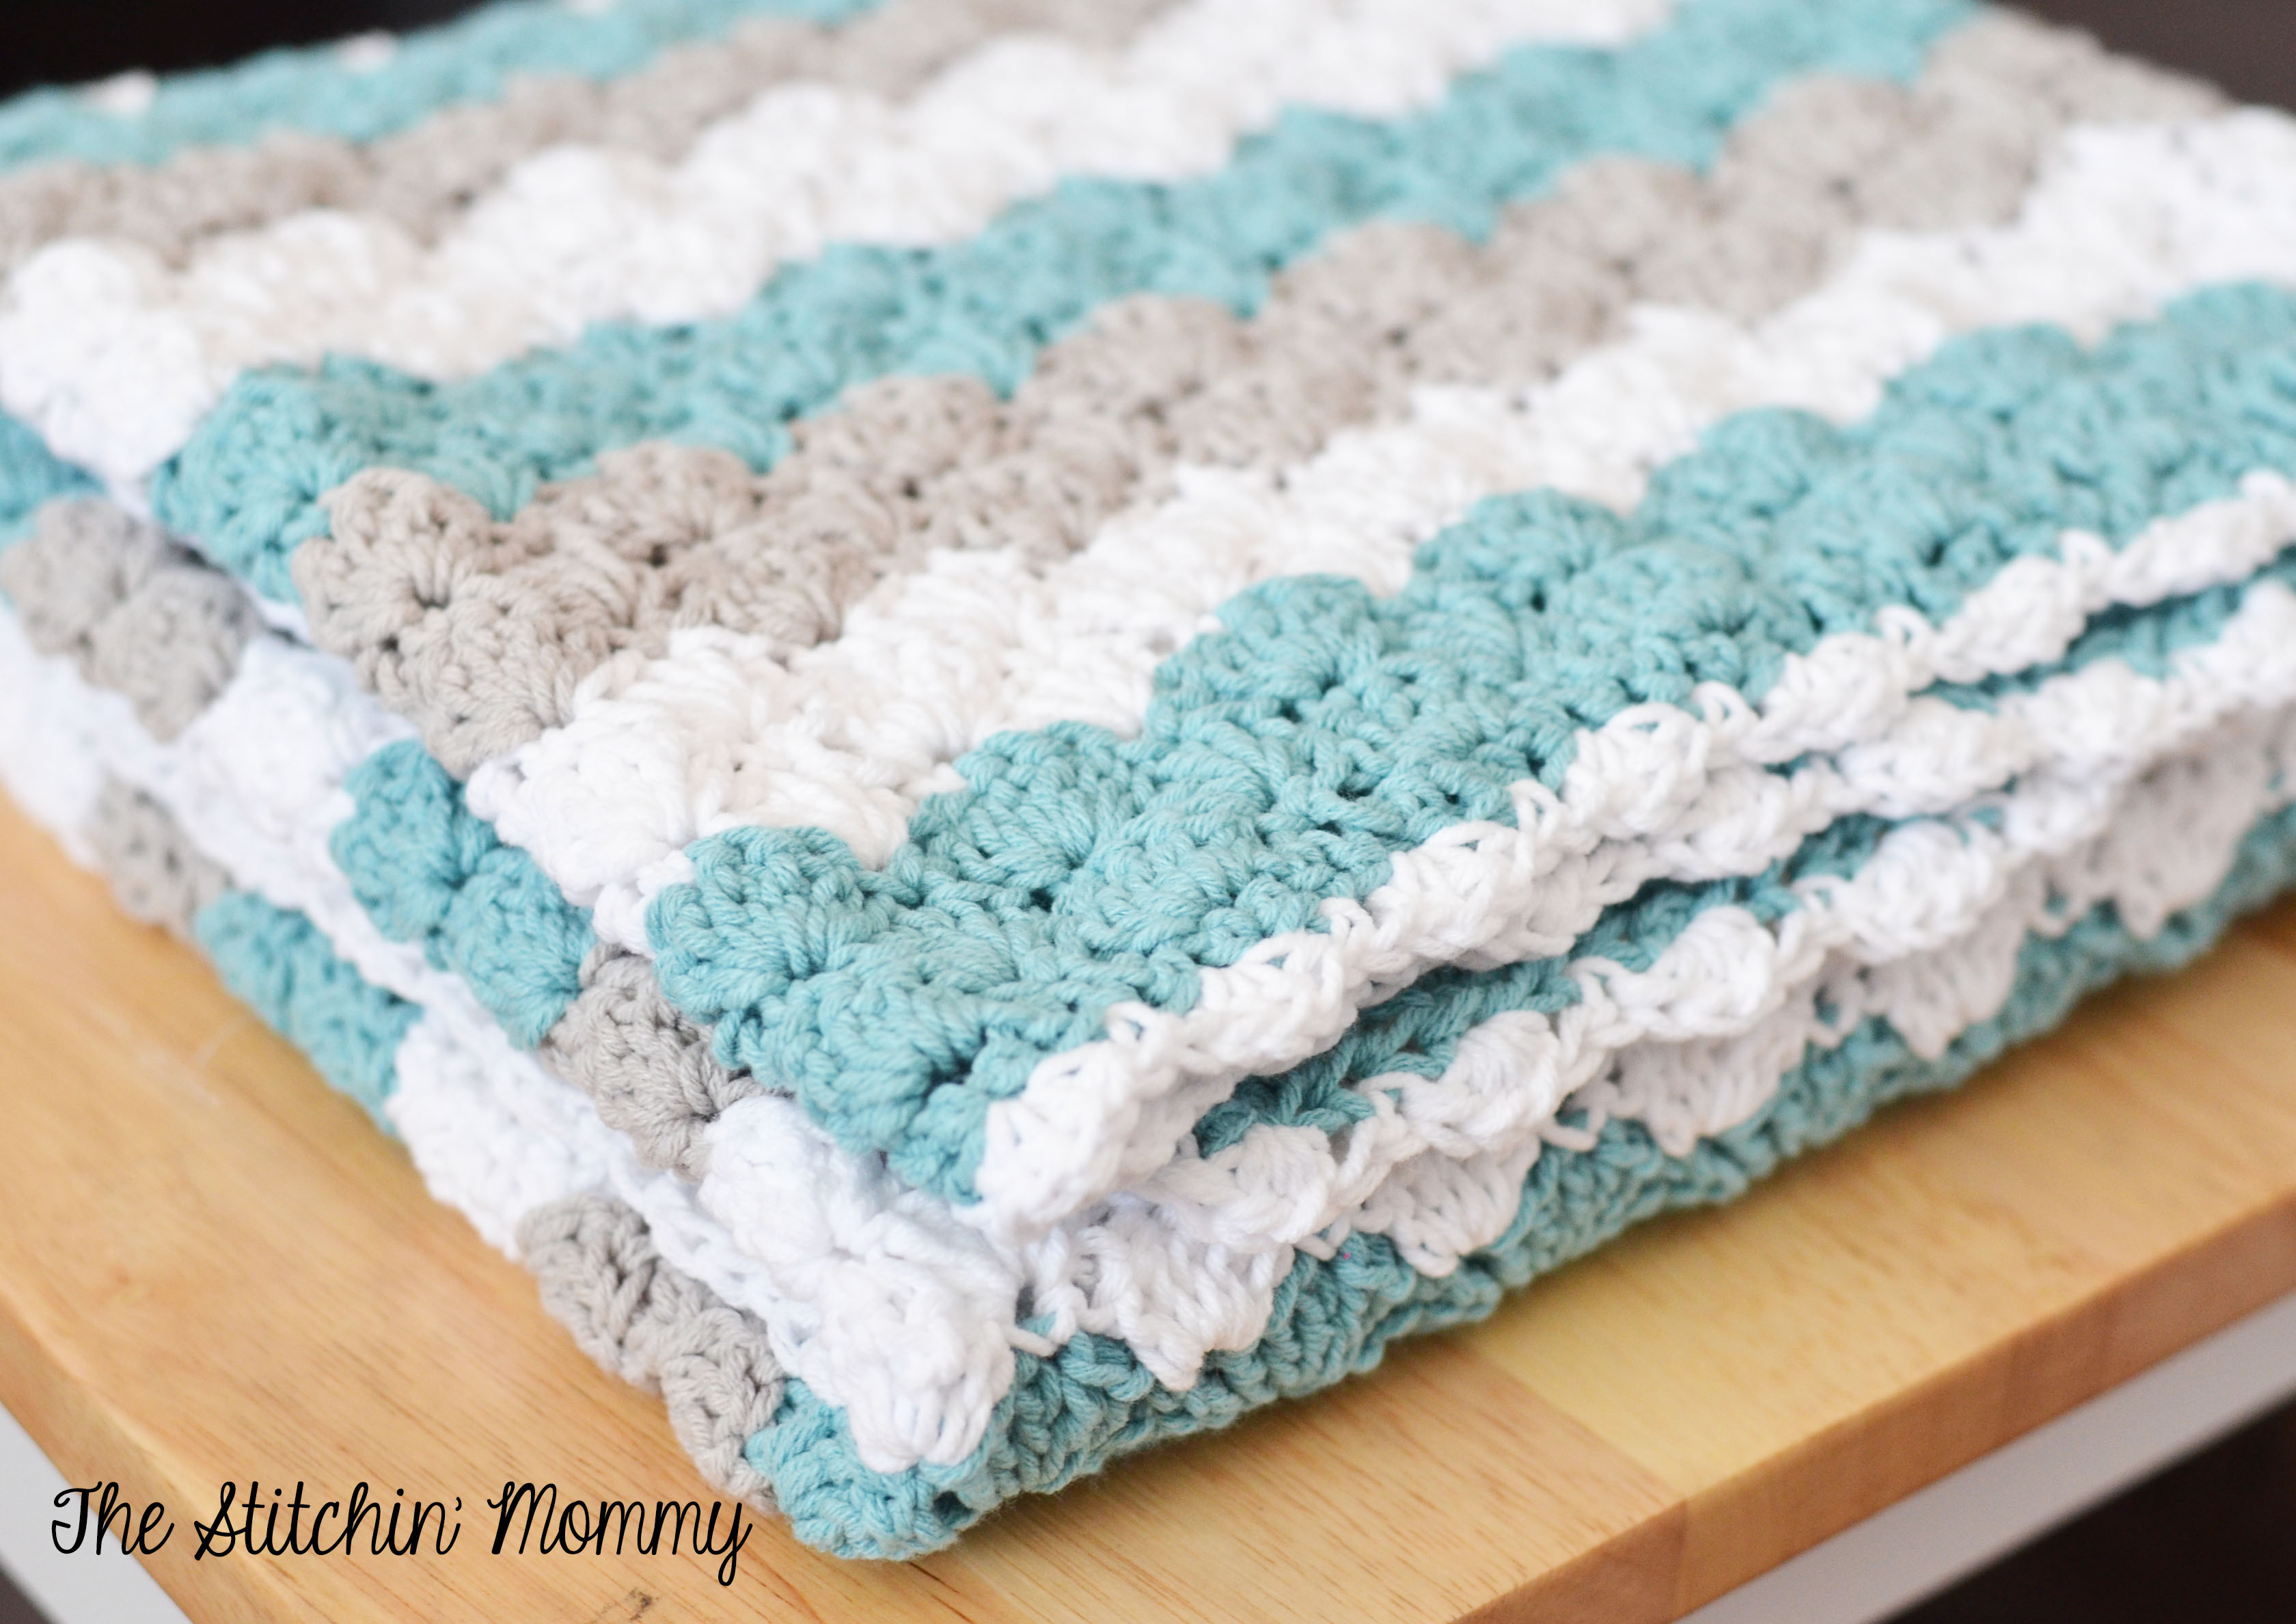 Crocheting Baby Blanket : Crochet Shell Stitch Baby Blanket by The Stitchin Mommy www ...